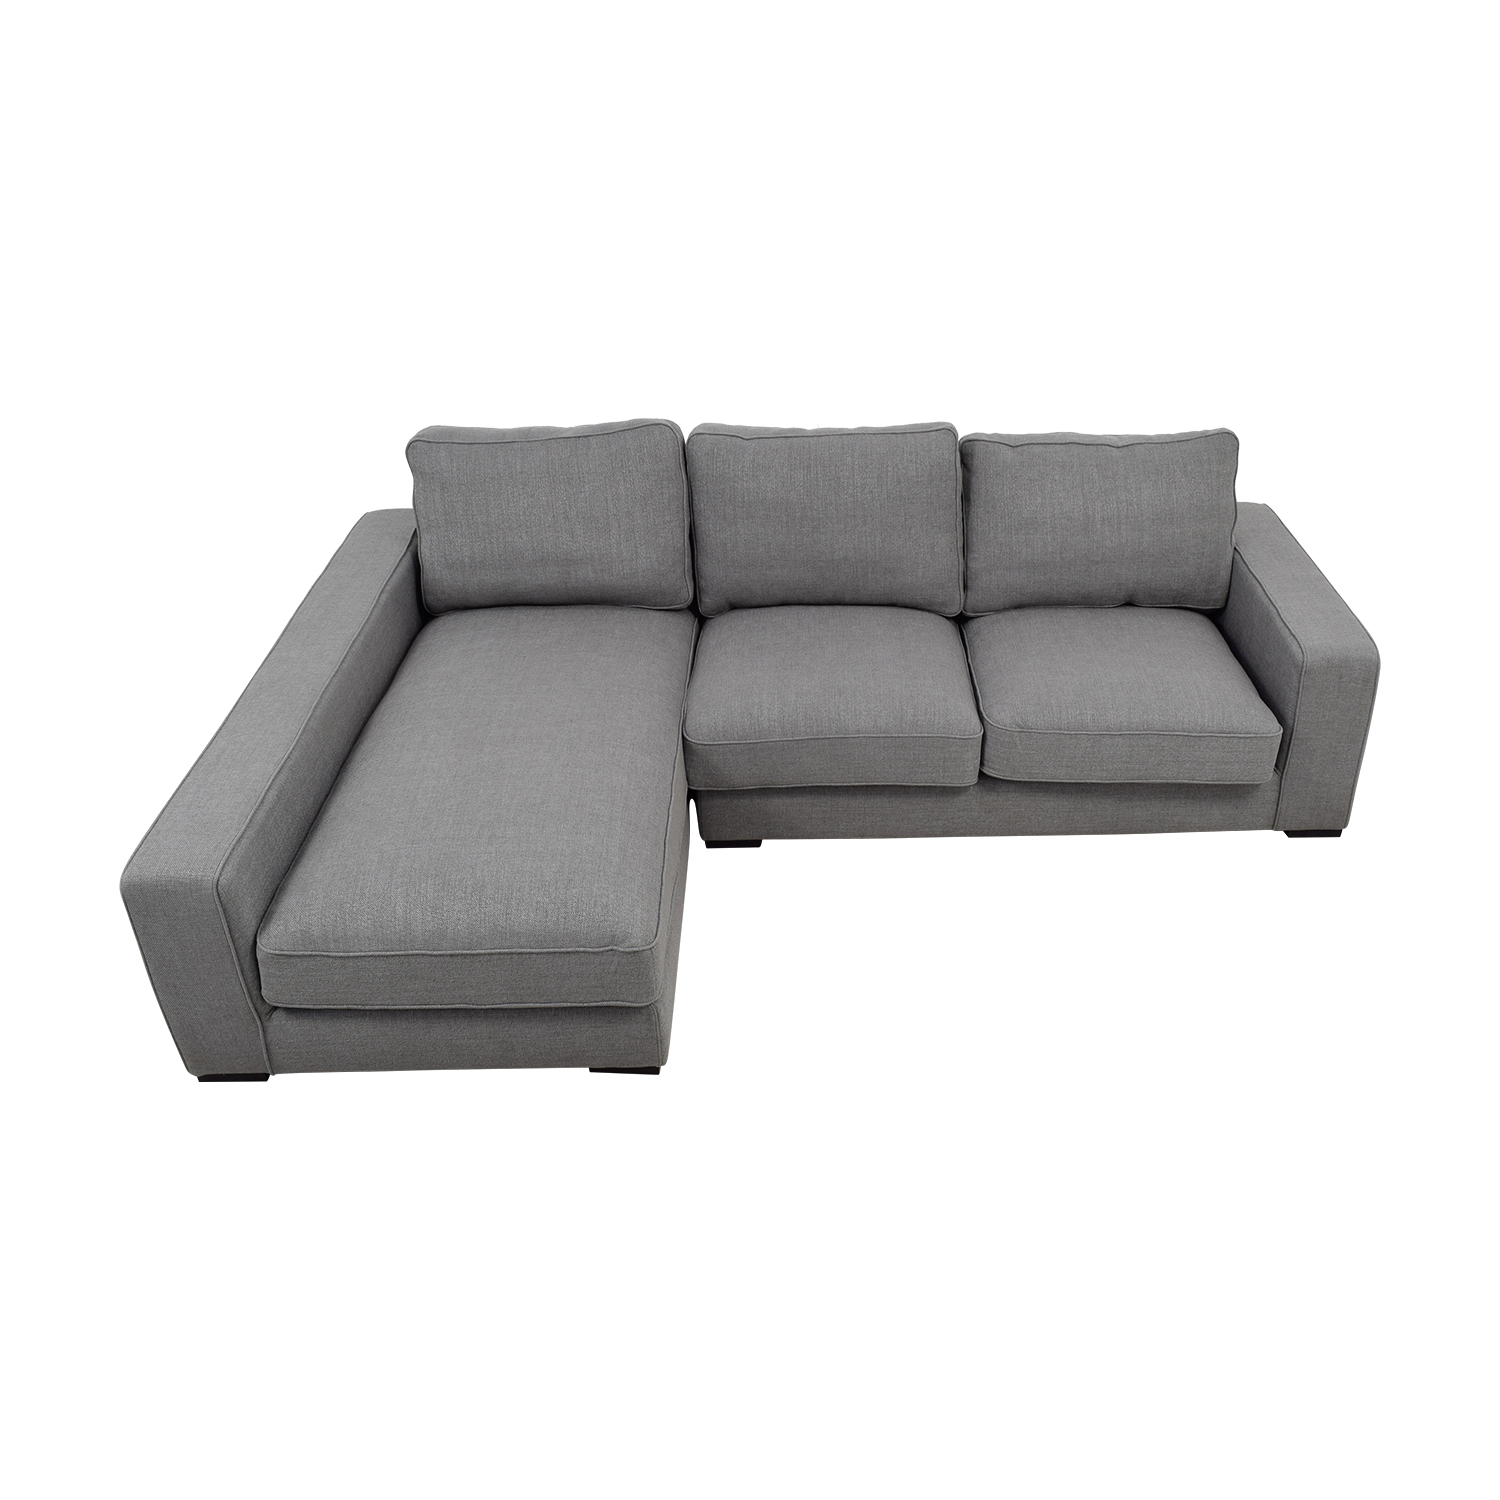 Ainsley Grey Left Chaise Sectional for sale